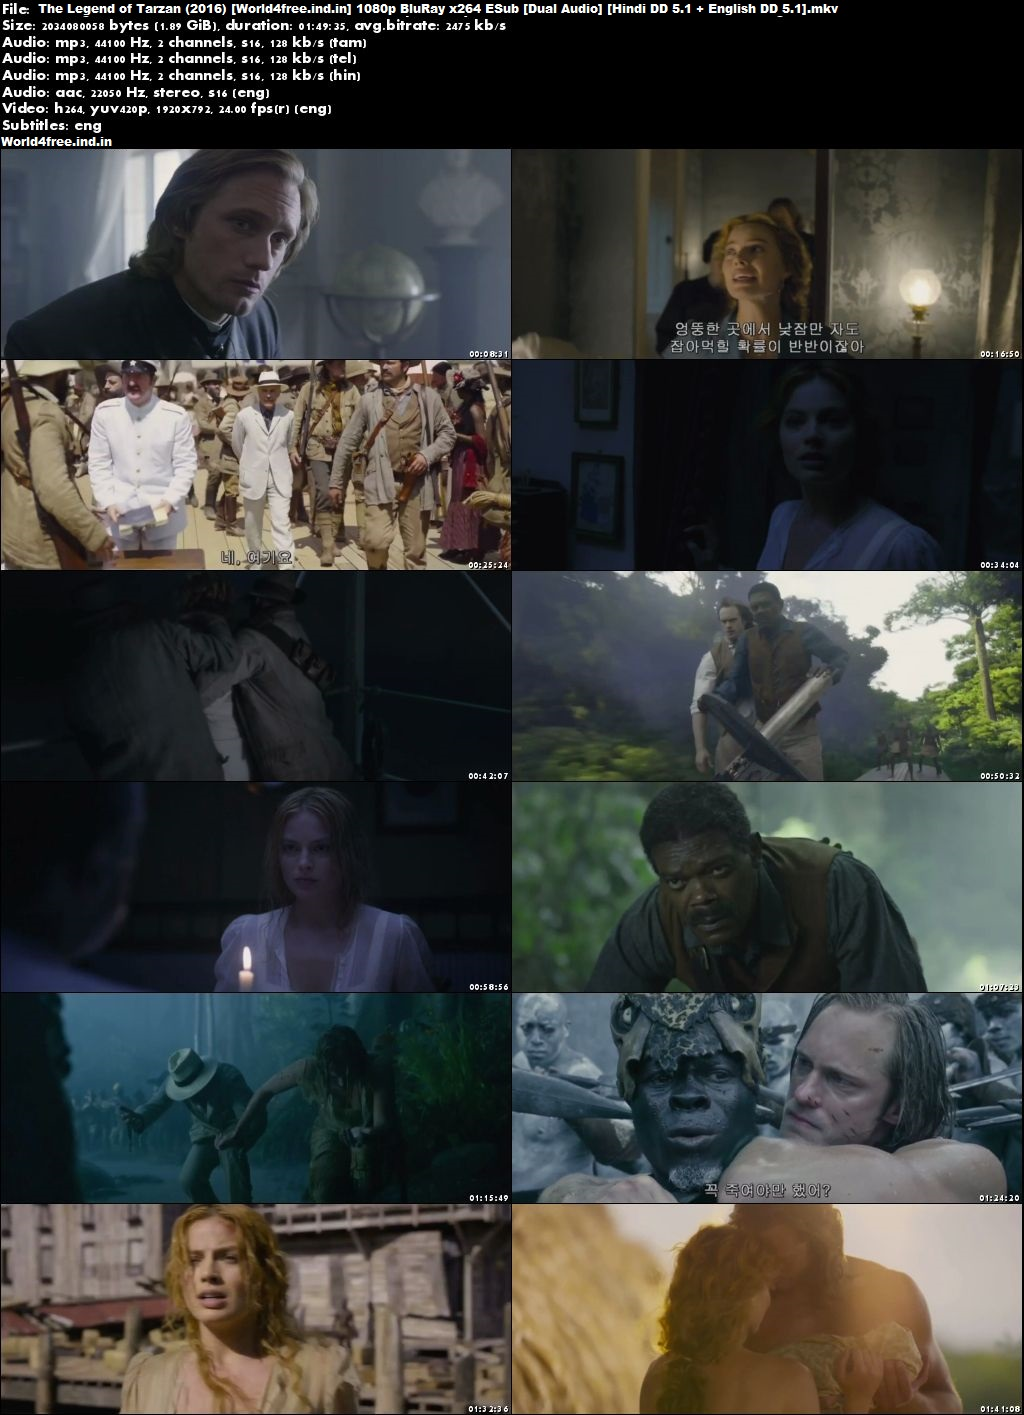 The Legend of Tarzan 2016 world4free.ind.in Dual Audio BRRip 720p Download